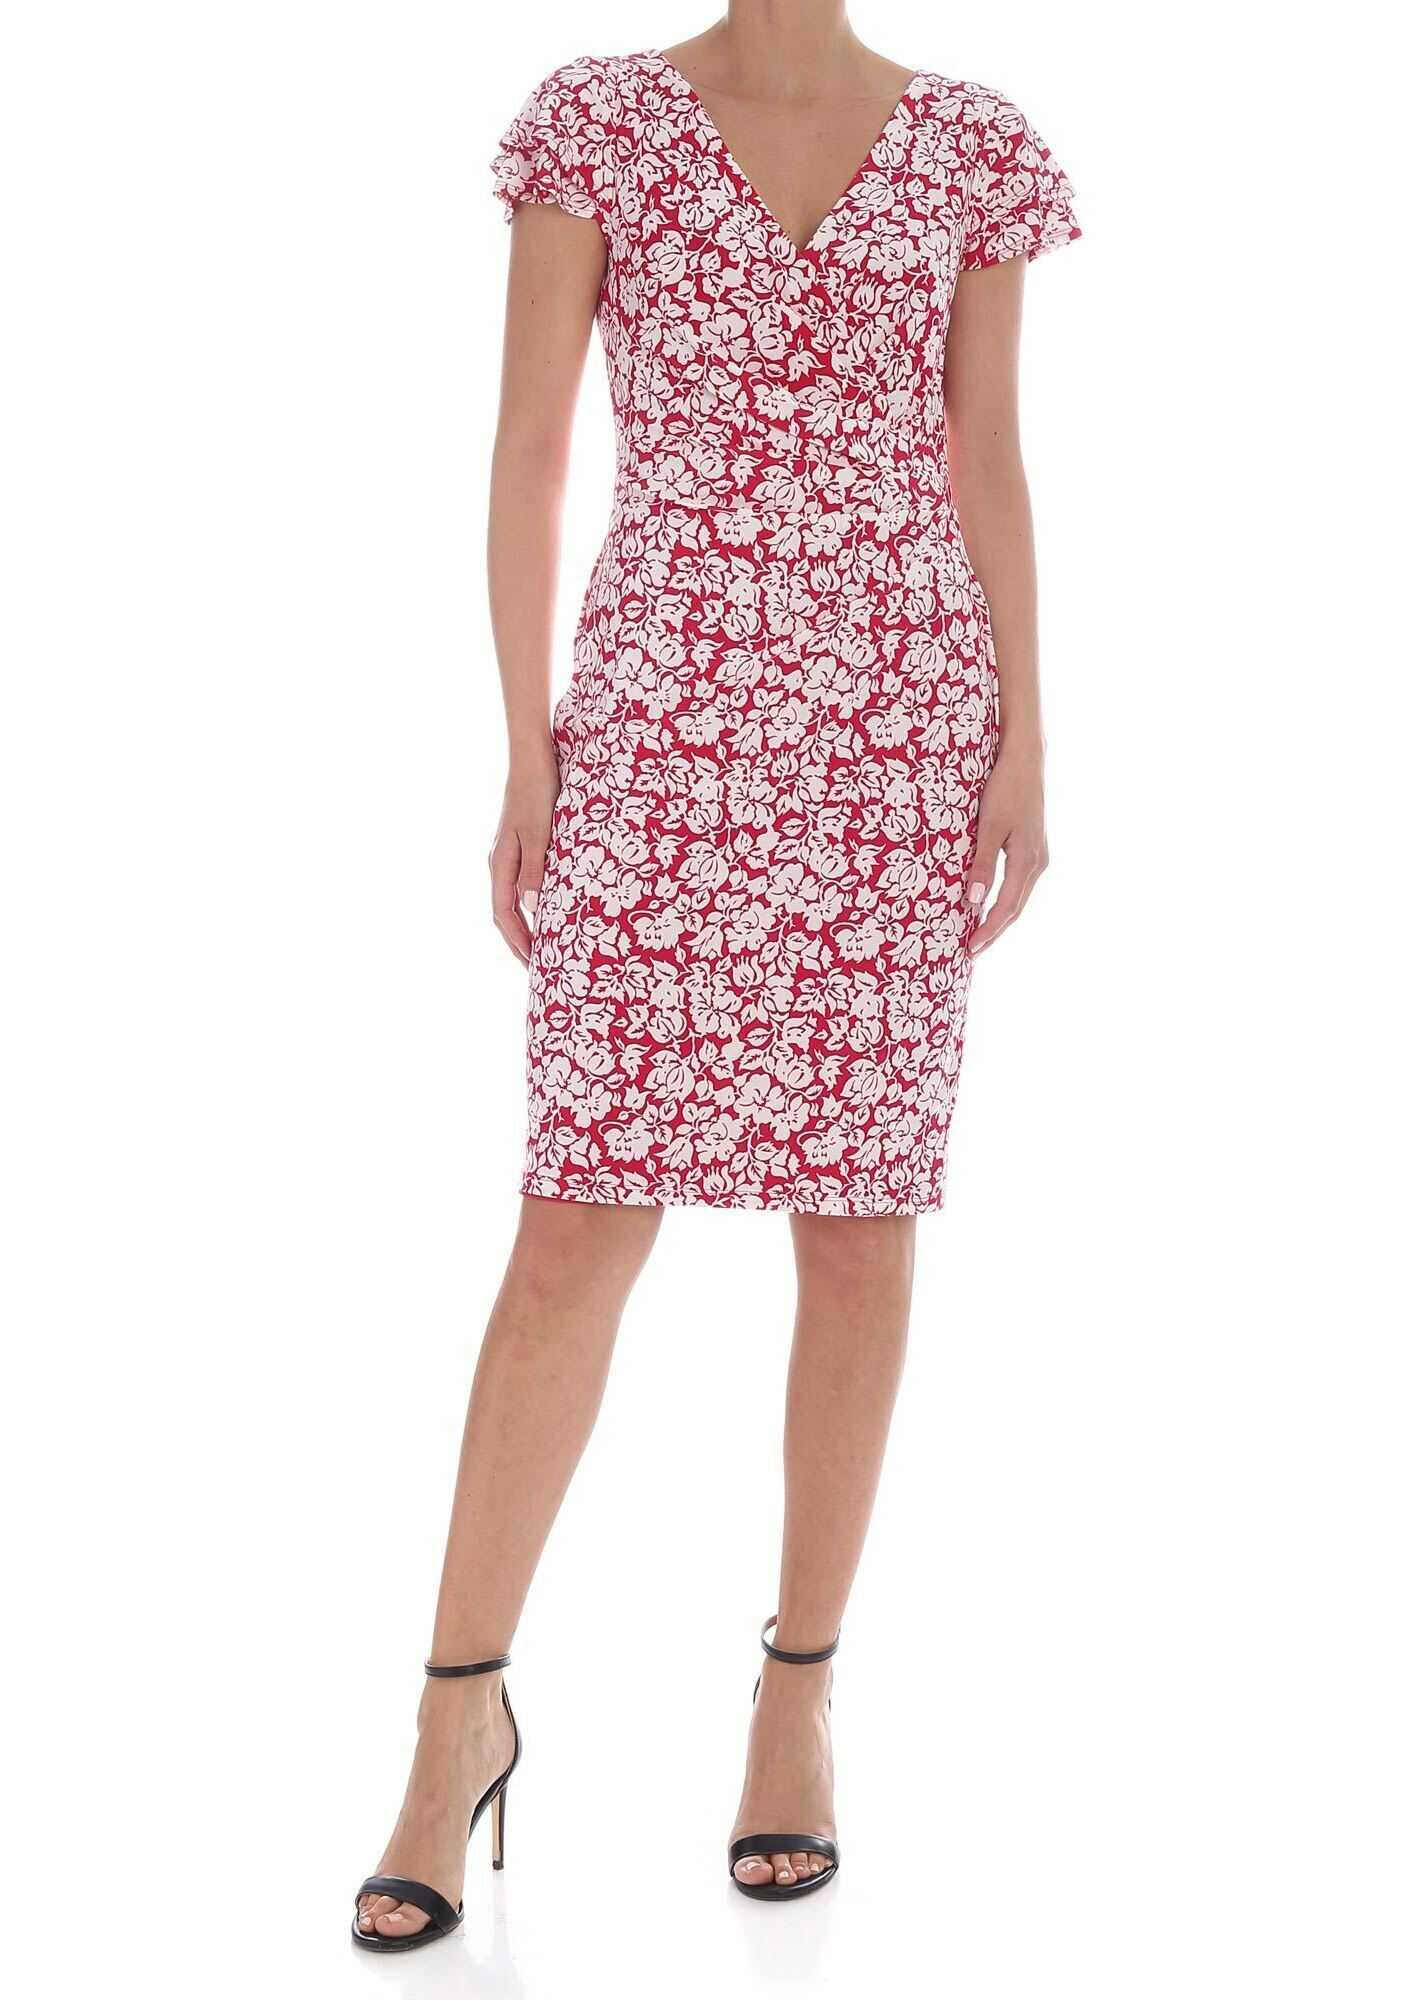 Ralph Lauren Floral Printed Knee-Length Dress In Magenta Red* Red